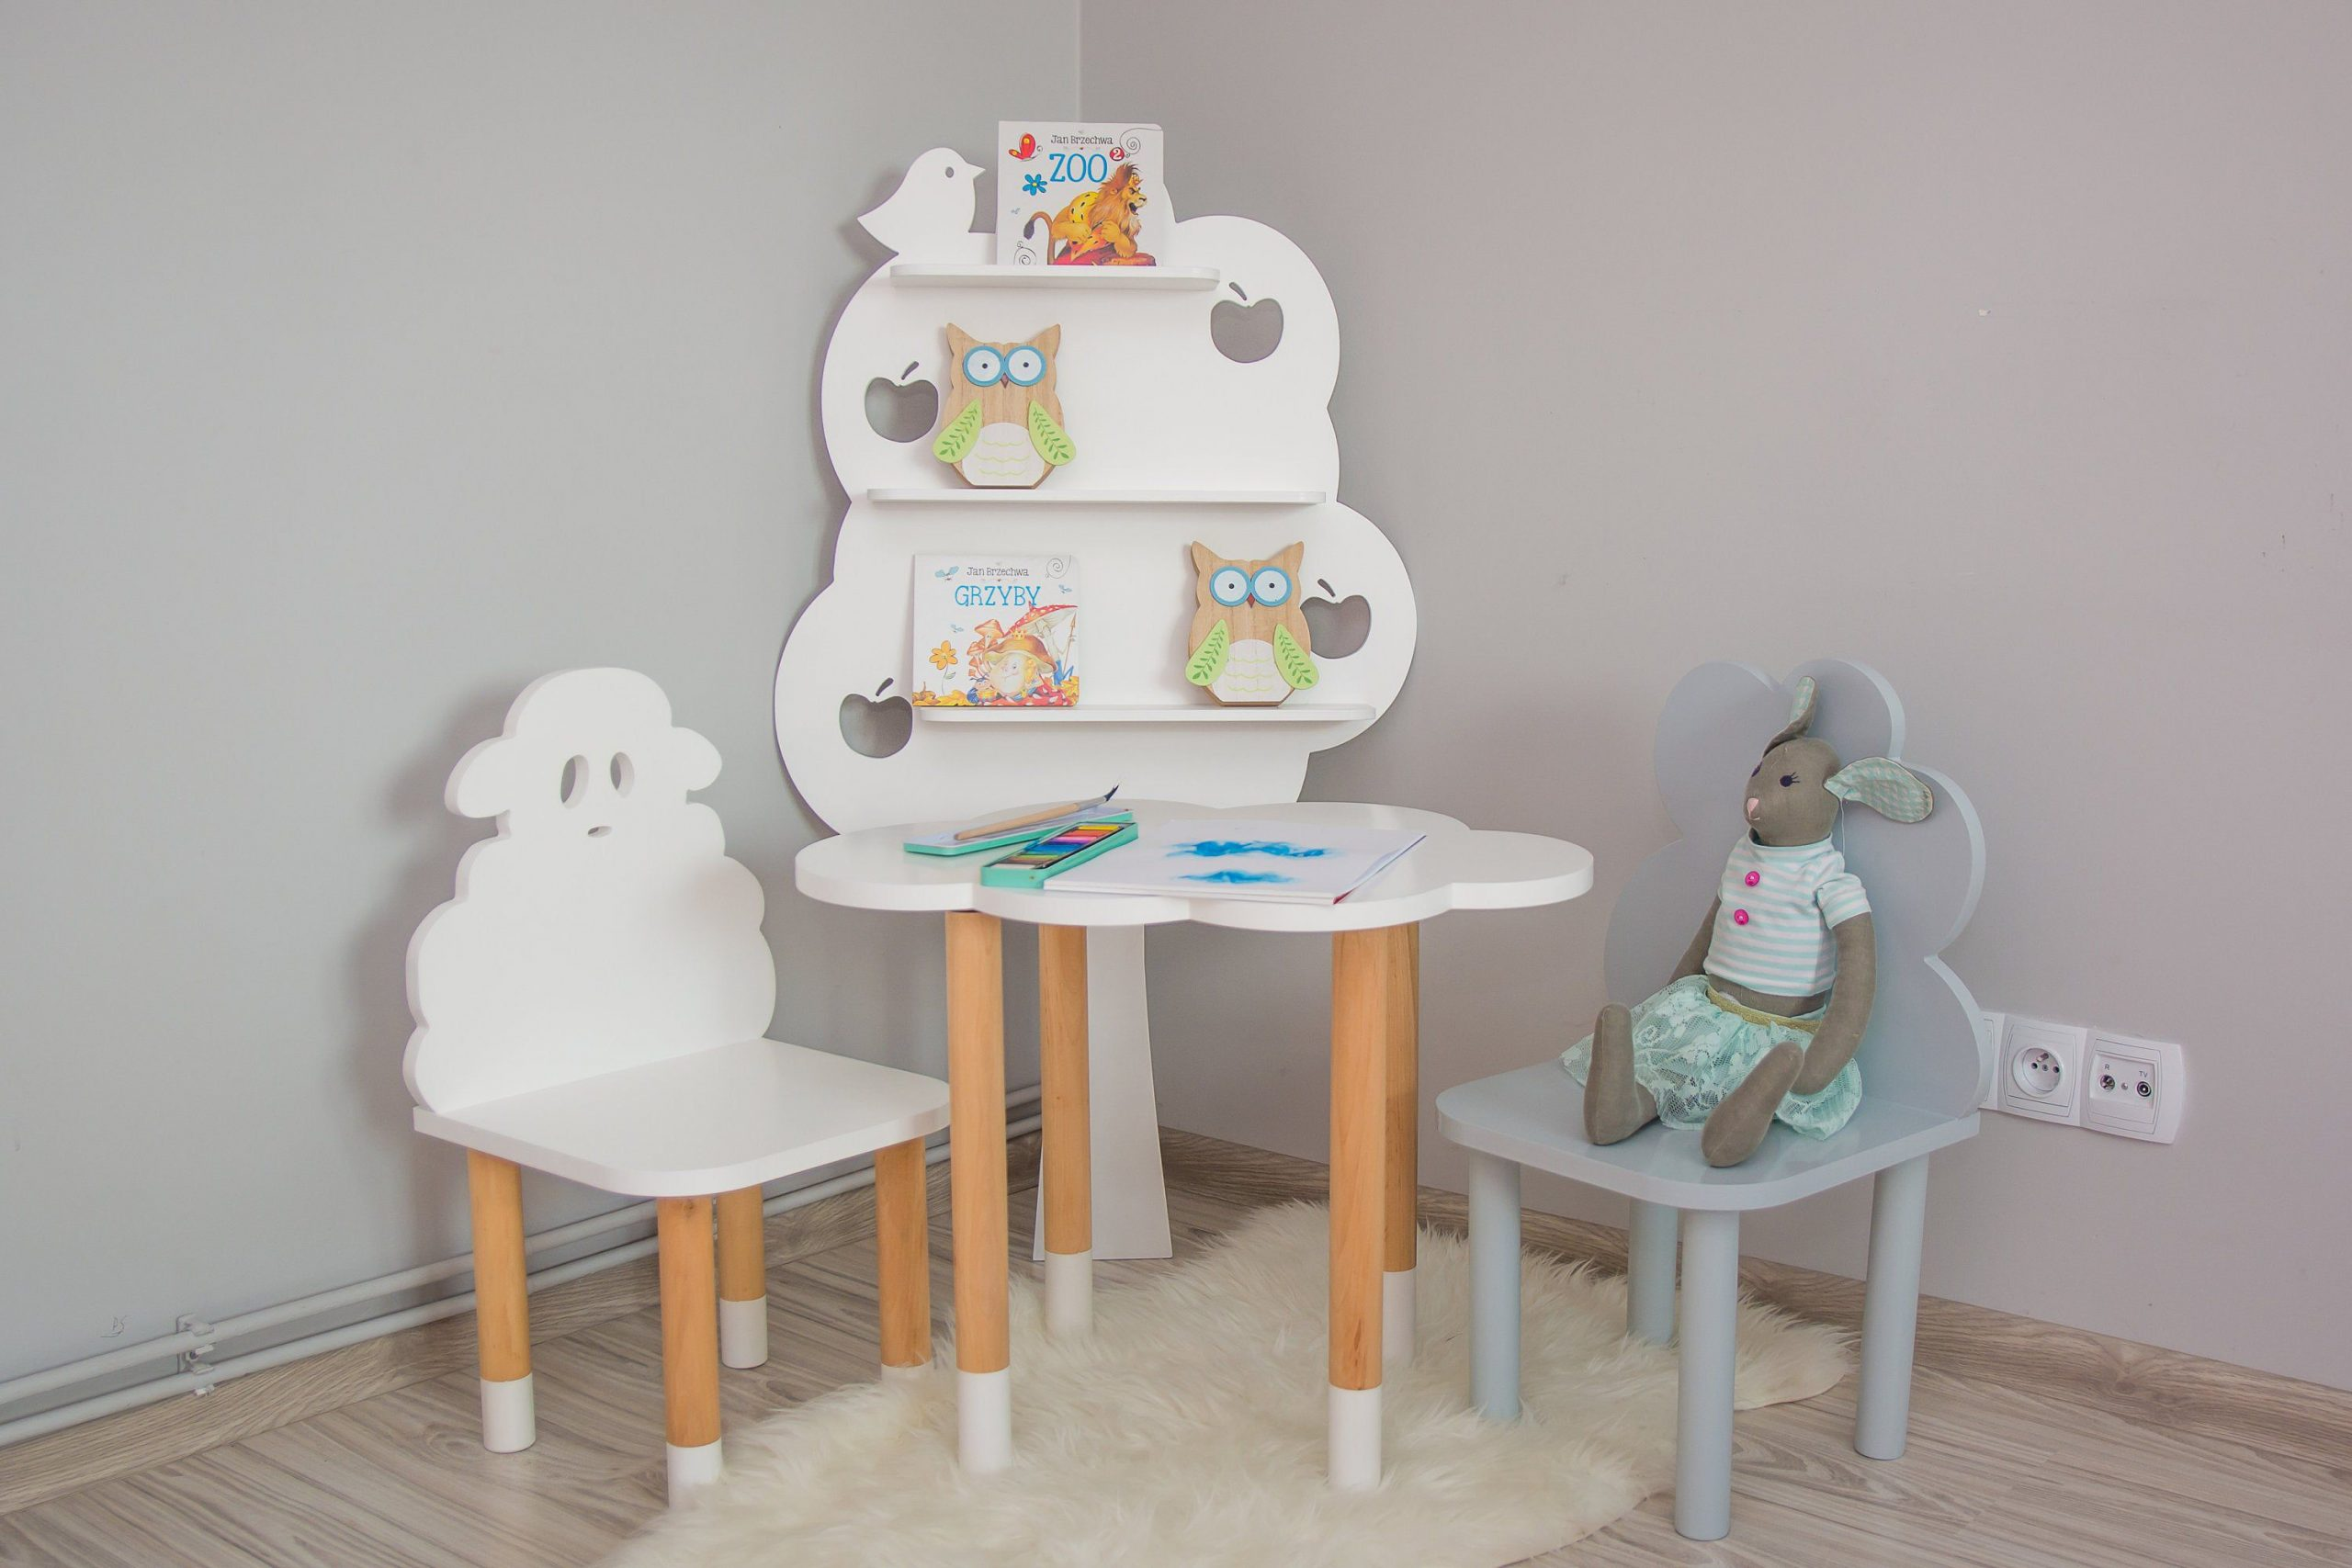 Set of TWO CHAIRS and TABLE(any shape and colour), Kids Furniture, Toddler Gift, Baby Furniture, Kids Chair, Baby Decor, Wooden Baby Chair